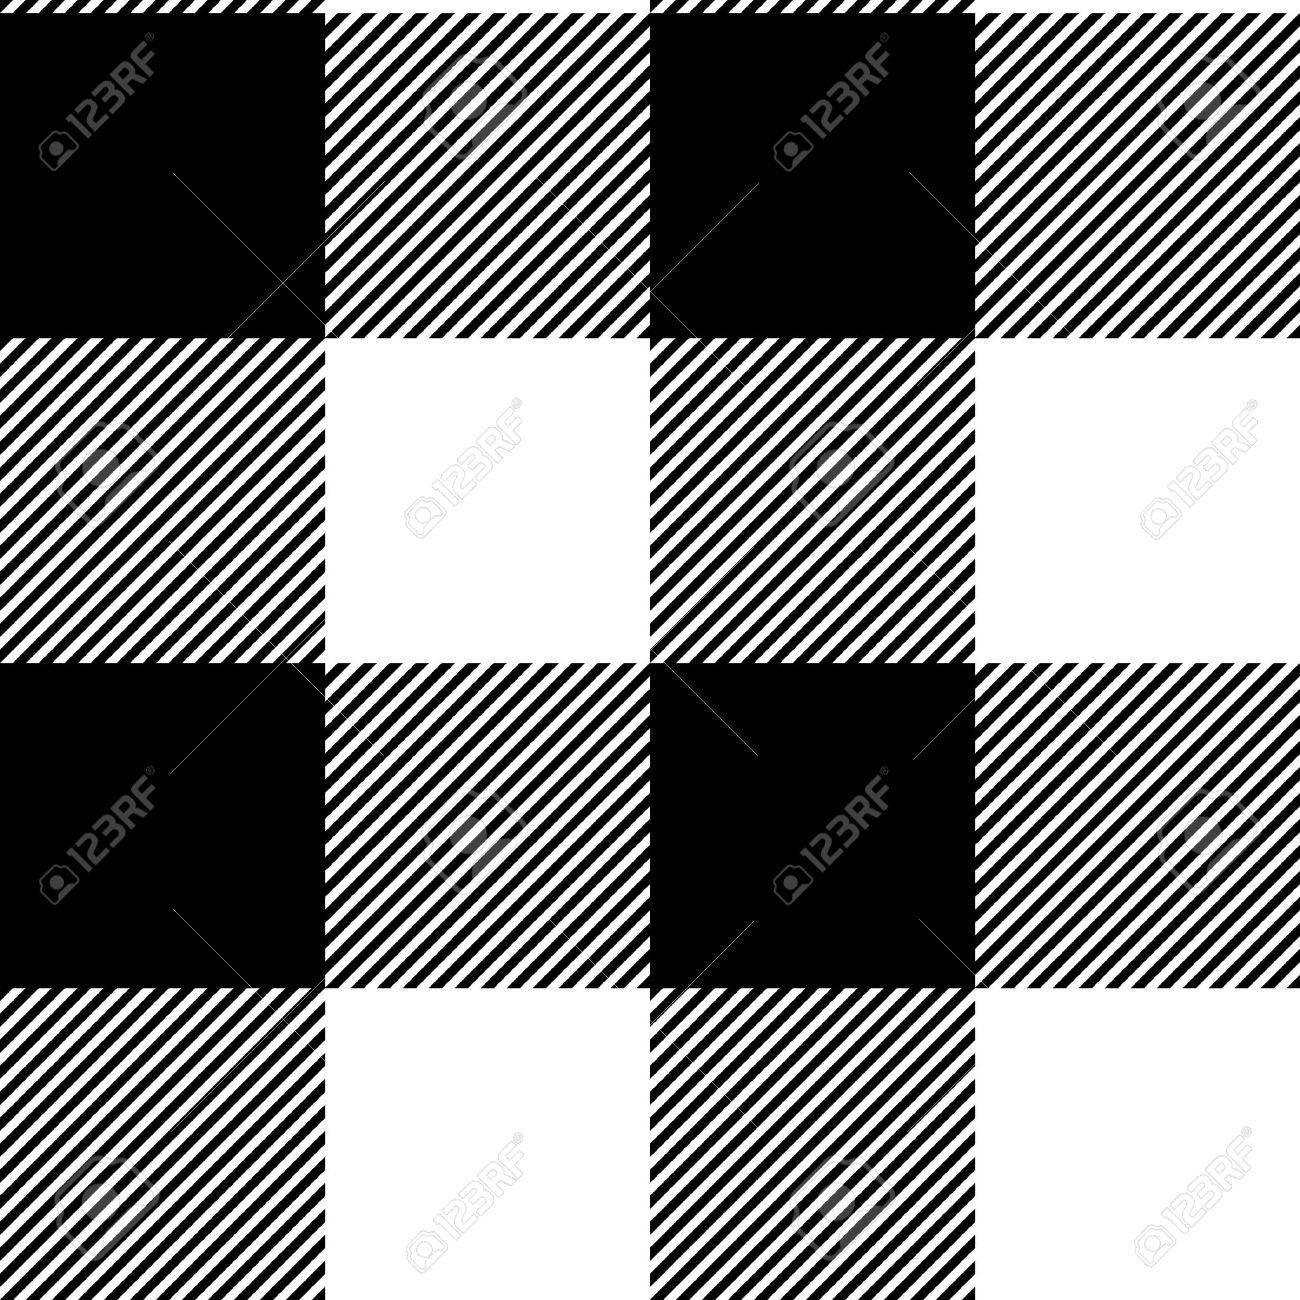 Checkered black and white simple fabric seamless pattern, vector Stock Vector - 17983621